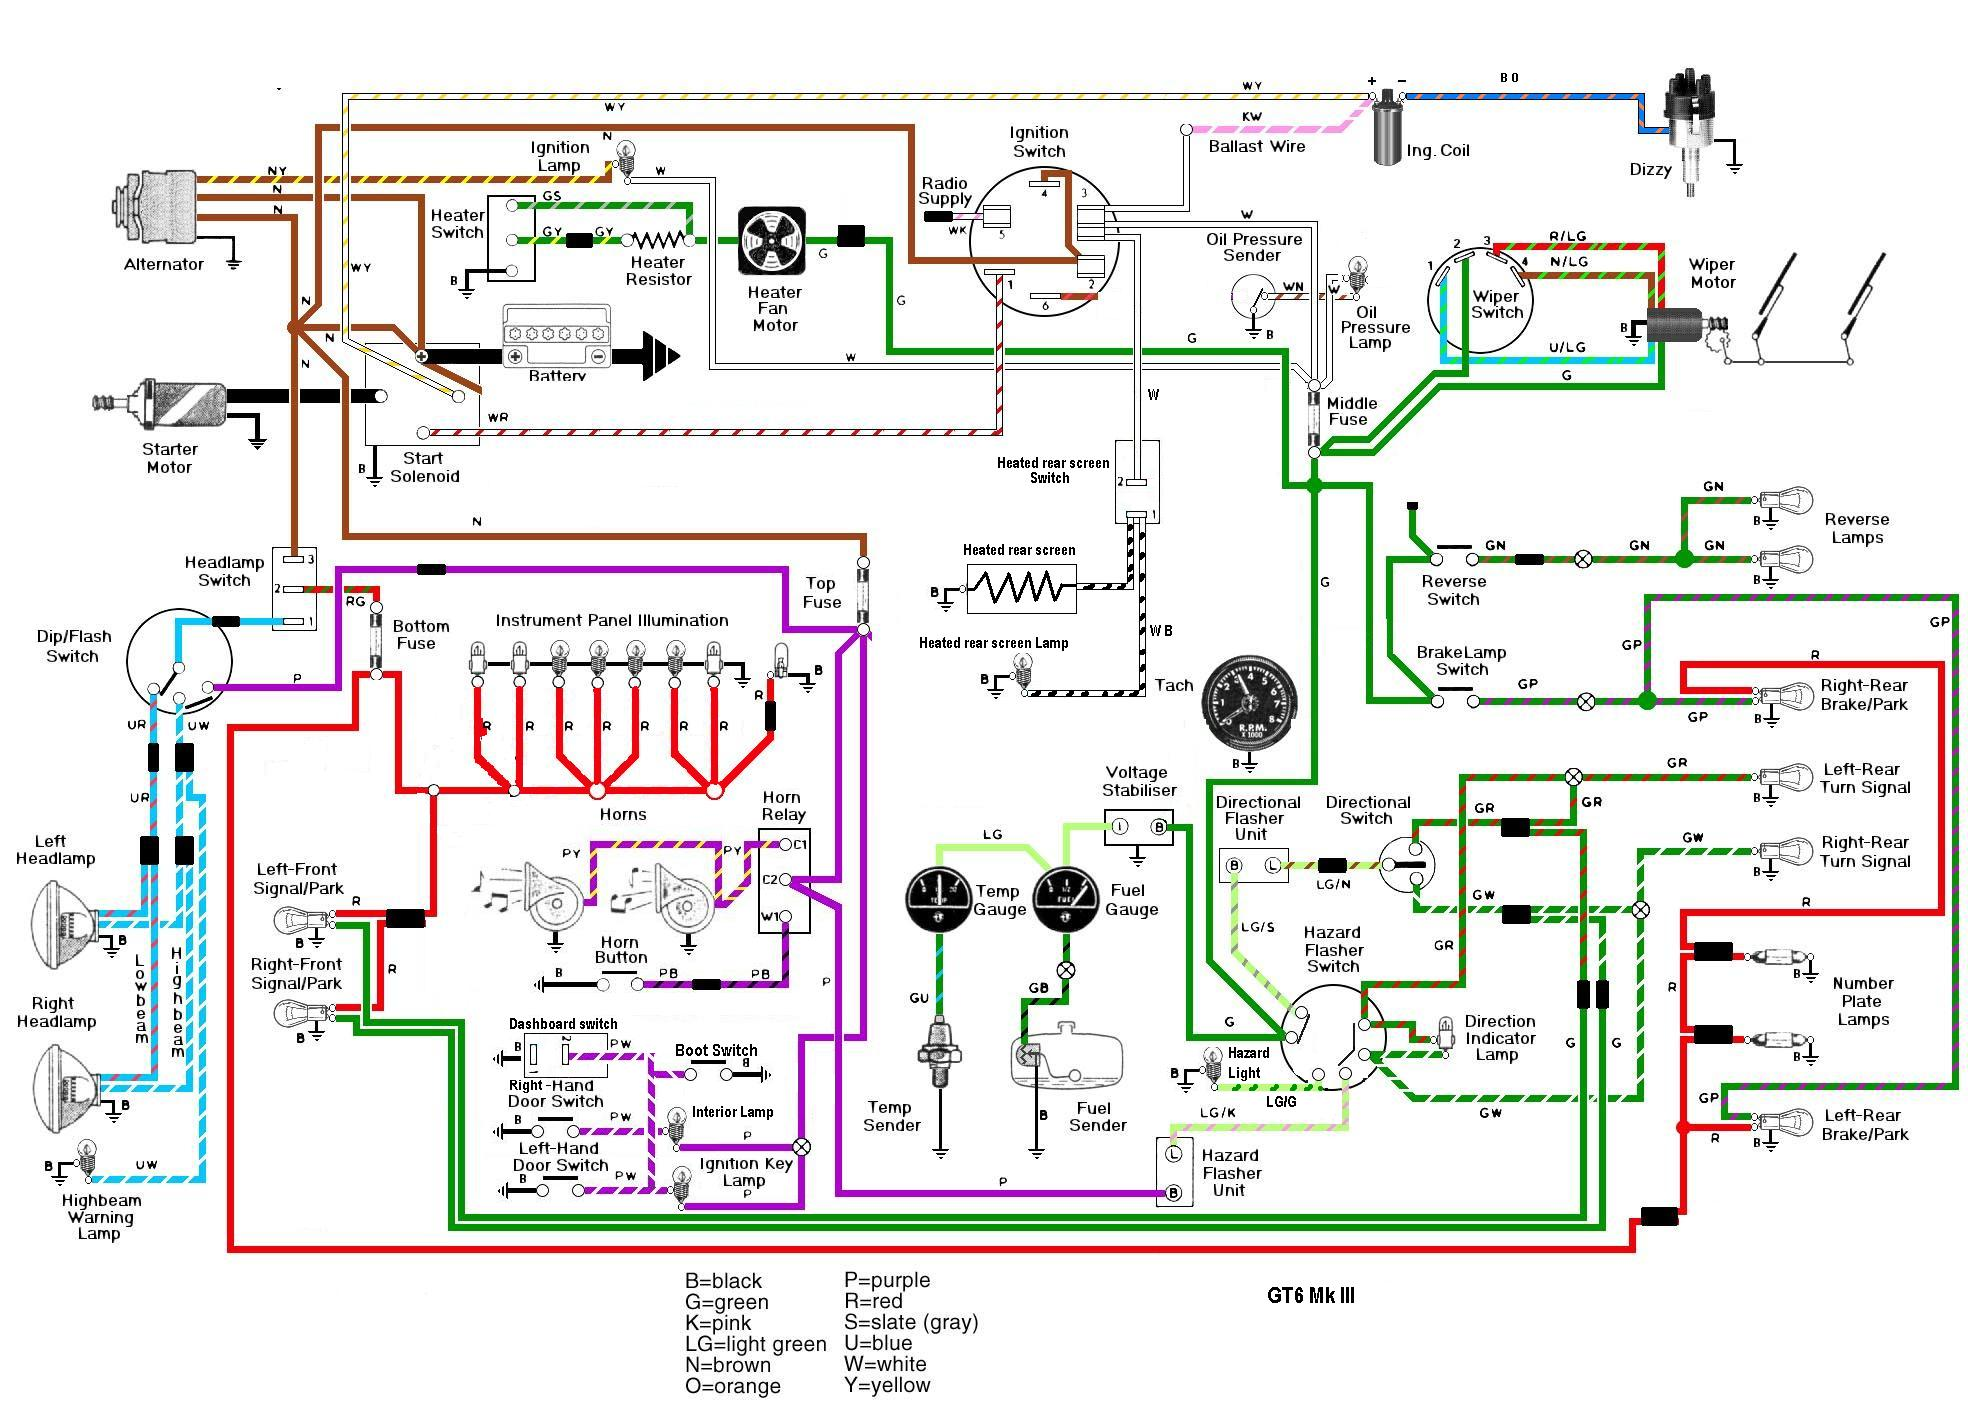 wiring diagram triumph bonneville data wiring diagram today 2010 Fatboy Wiring-Diagram wiring diagram 67 triumph gt6 wiring diagram detailed 1971 triumph t120r wiring diagram wiring diagram triumph bonneville